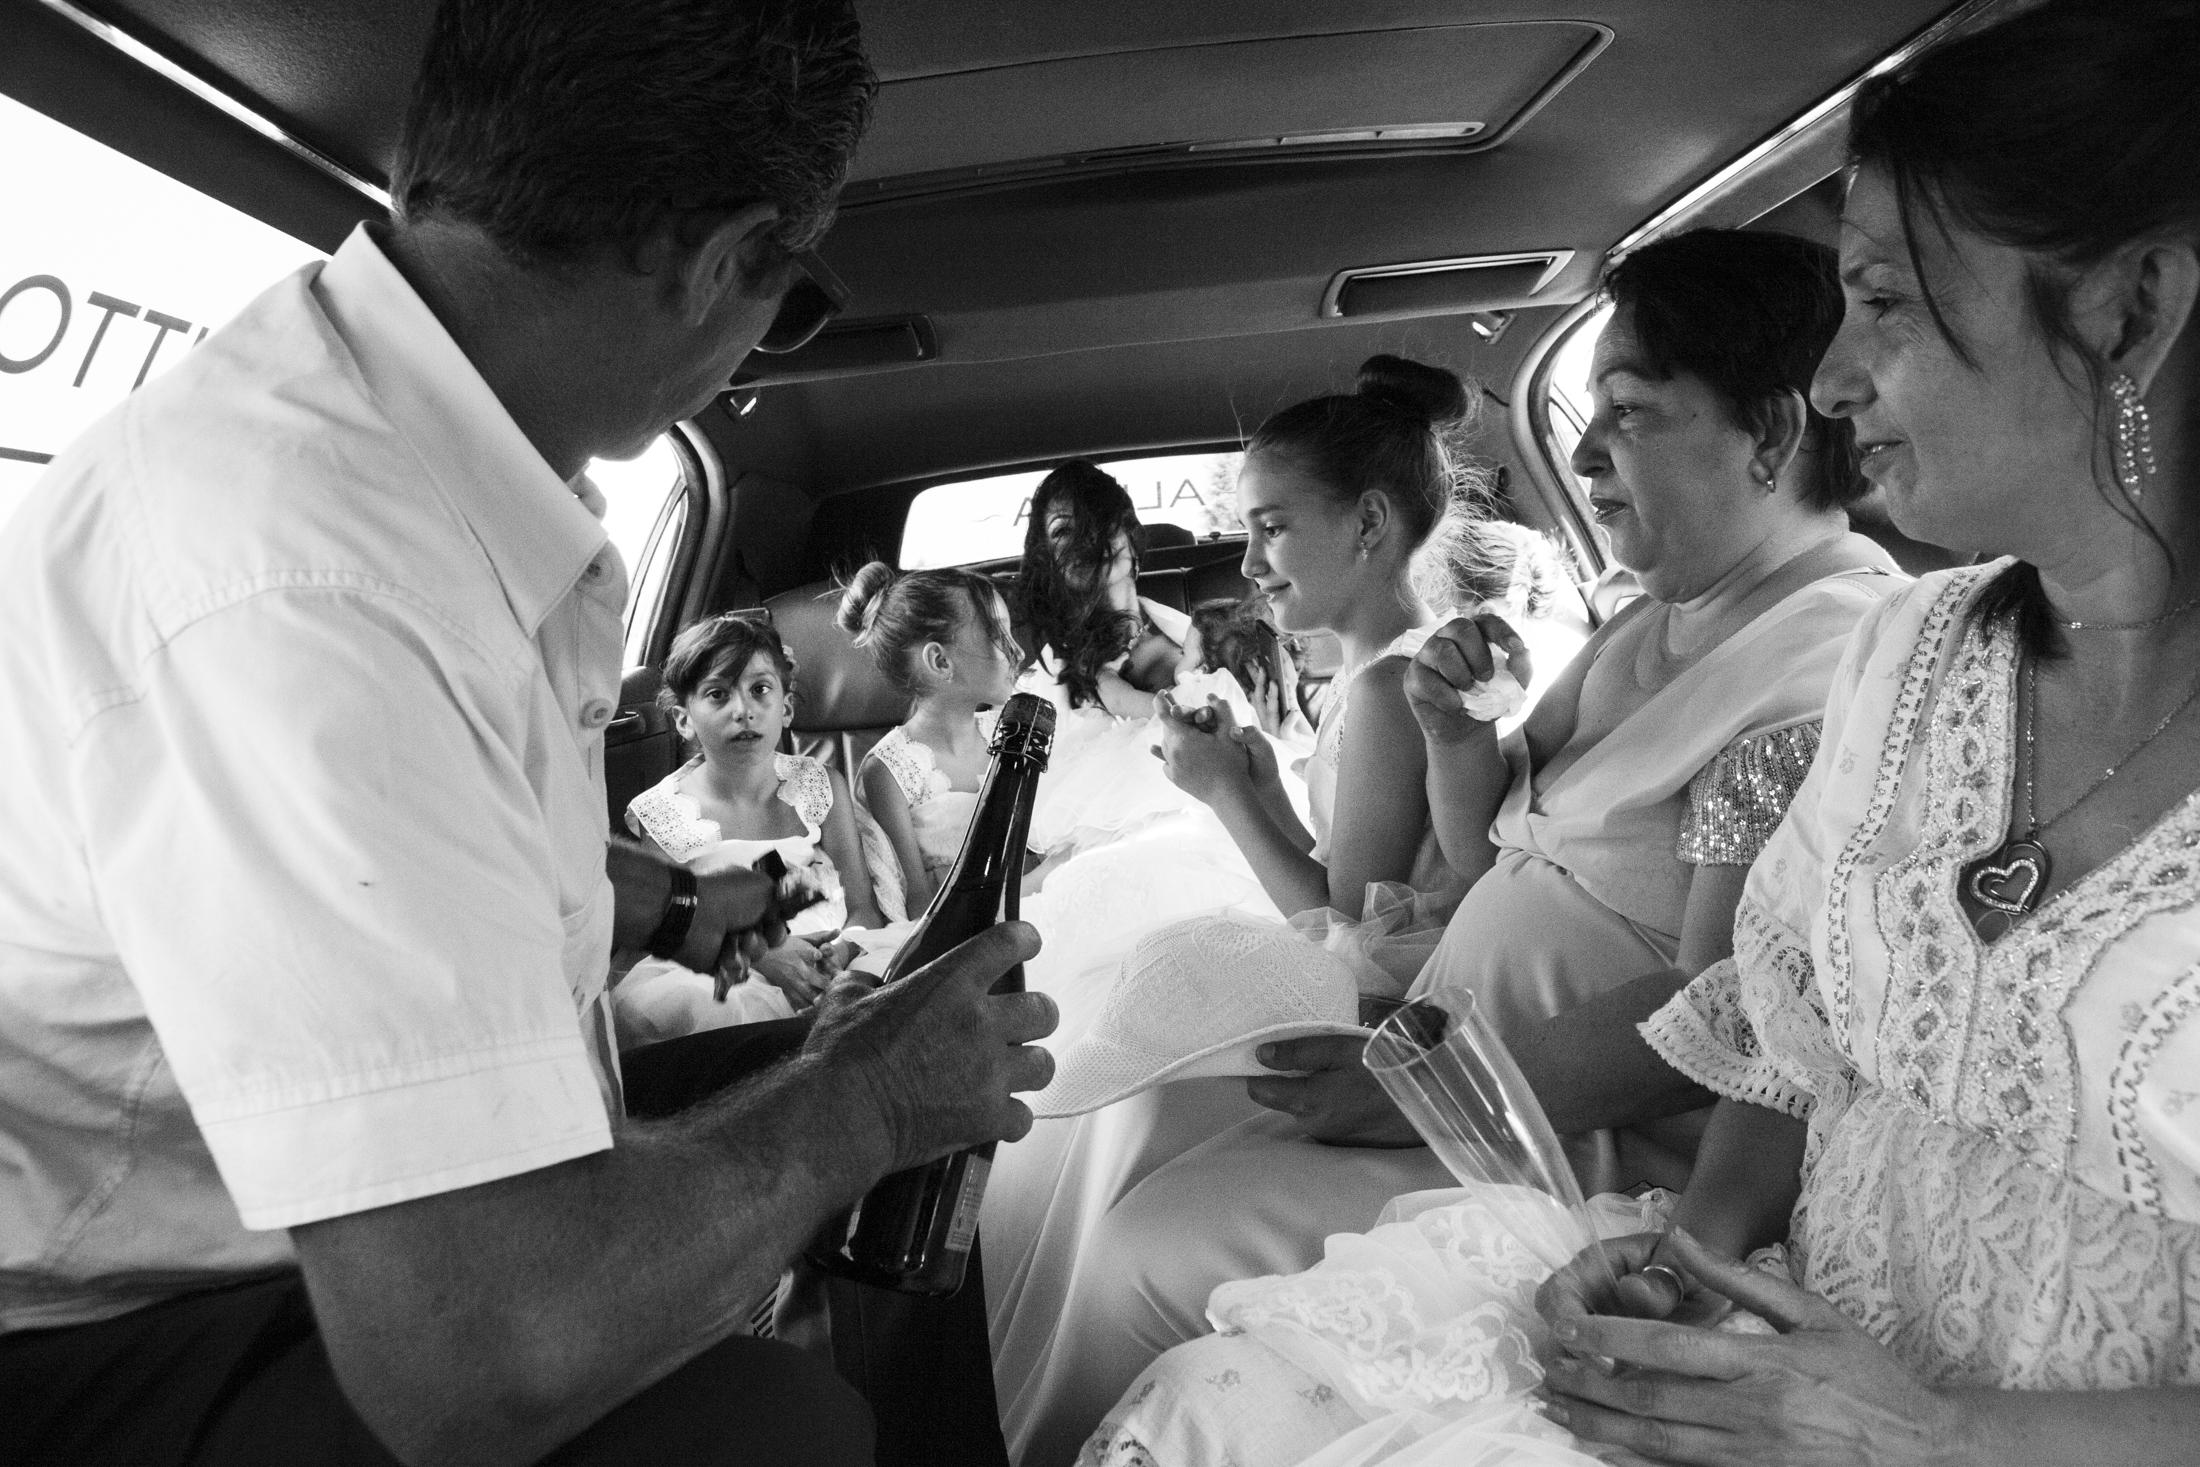 June 2019, Castelnuovo Rangone, Emilia-Romagna, Italy. Nancy and her family are inside the limo that's taking them to the church for the wedding. Thanks to the great spread of the evangelical religion, many traditions within the Sinti culture are changing, thus facilitating social inclusion.